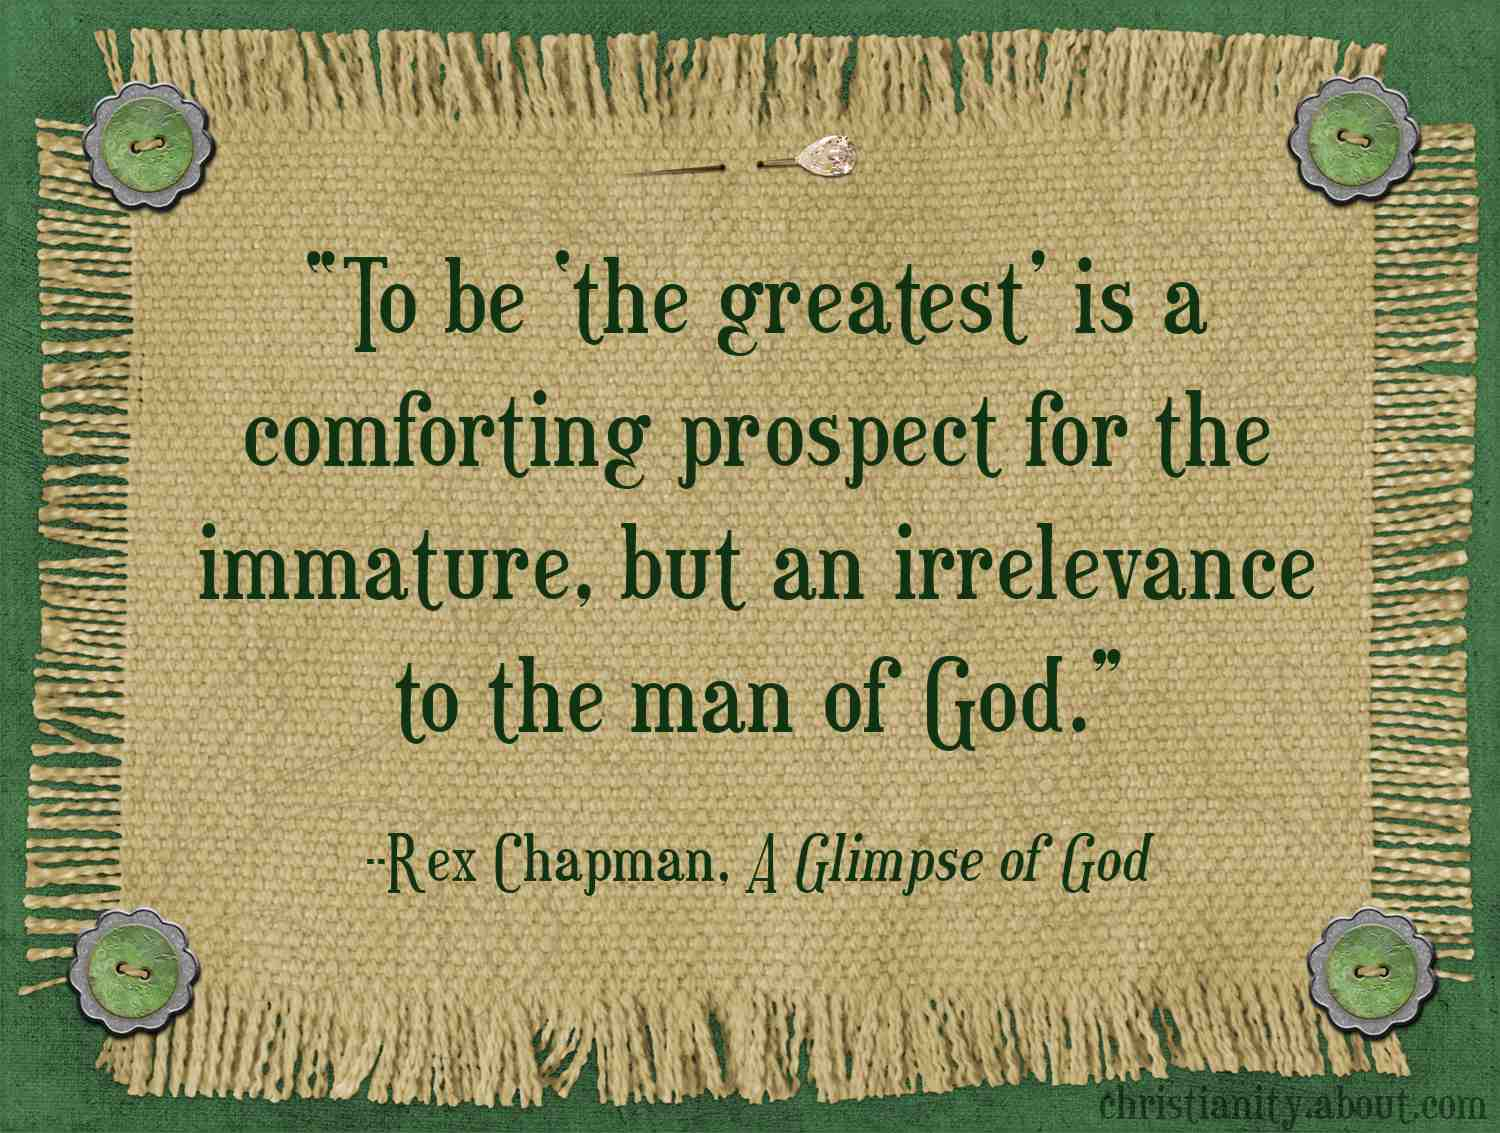 Humility is Possible When We Know Our Place With God